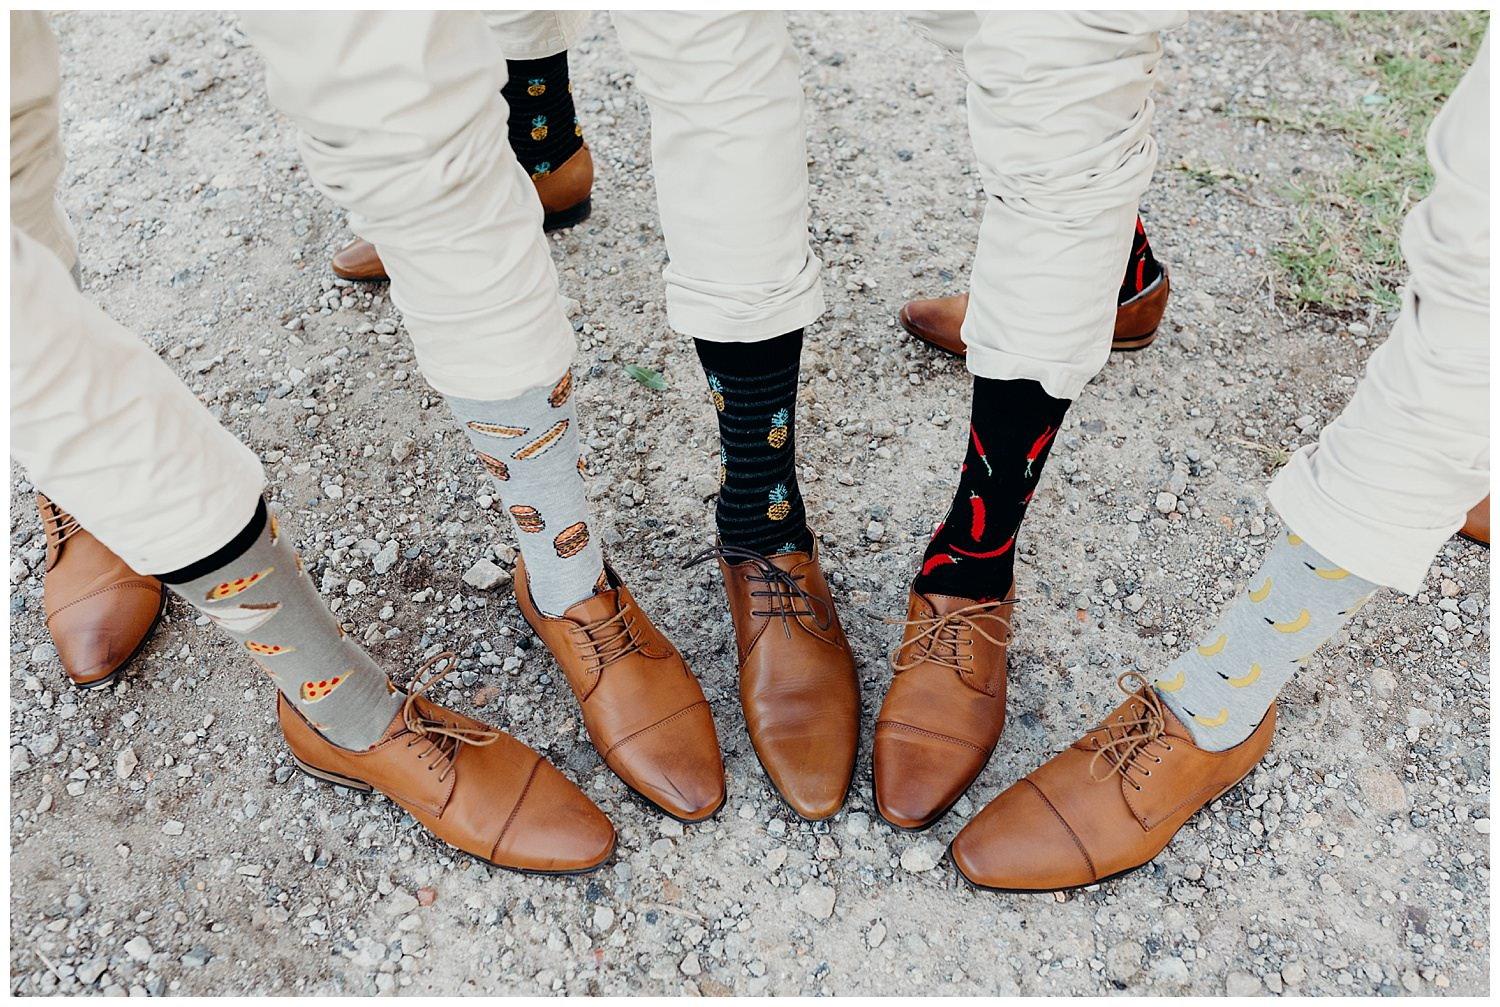 Bowral Southern Highlands Autumn Wedding - Groom and groomsmen socks